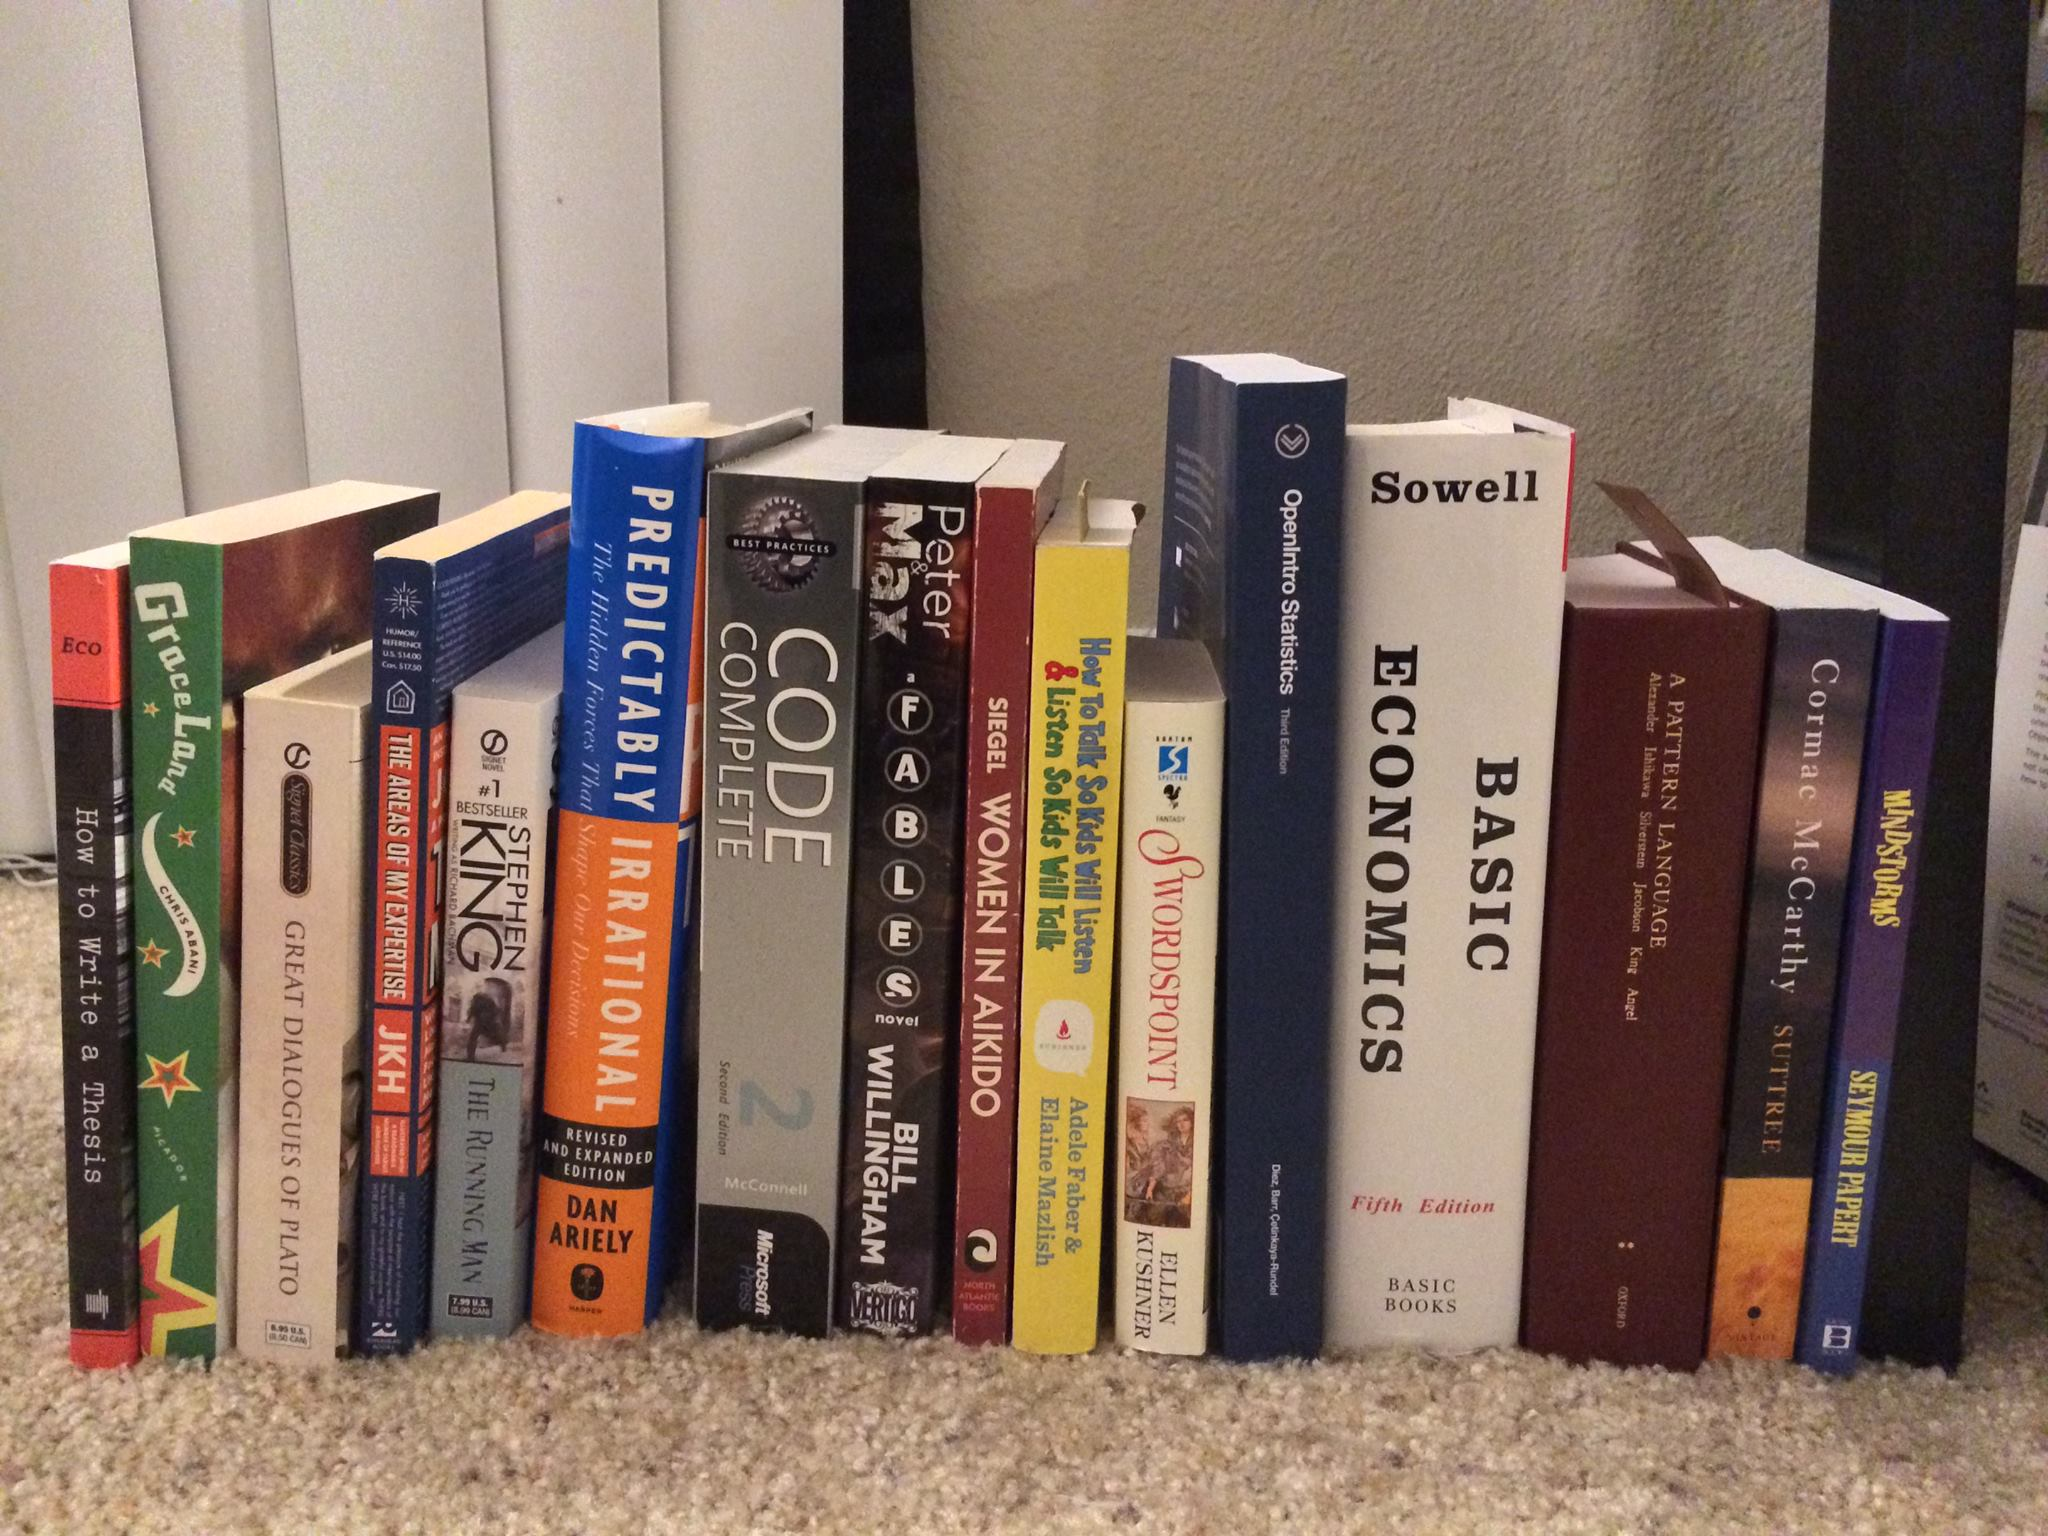 My next set of books to read from left to right